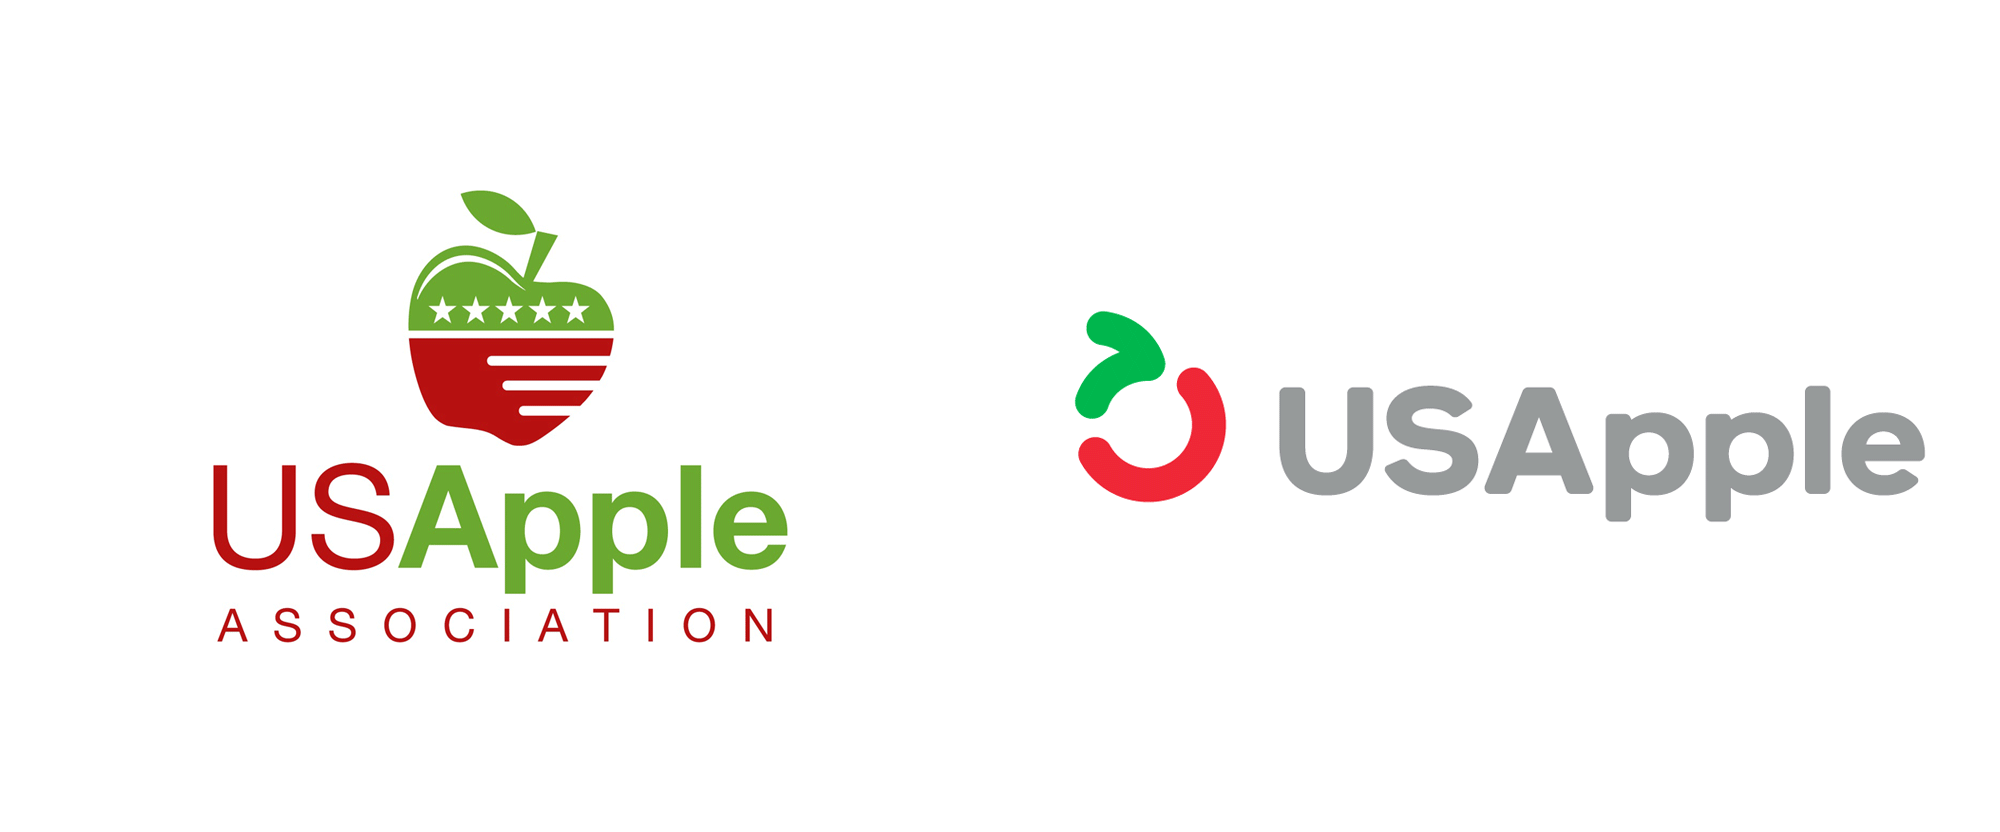 New Logo for U.S. Apple Association by Mekanic